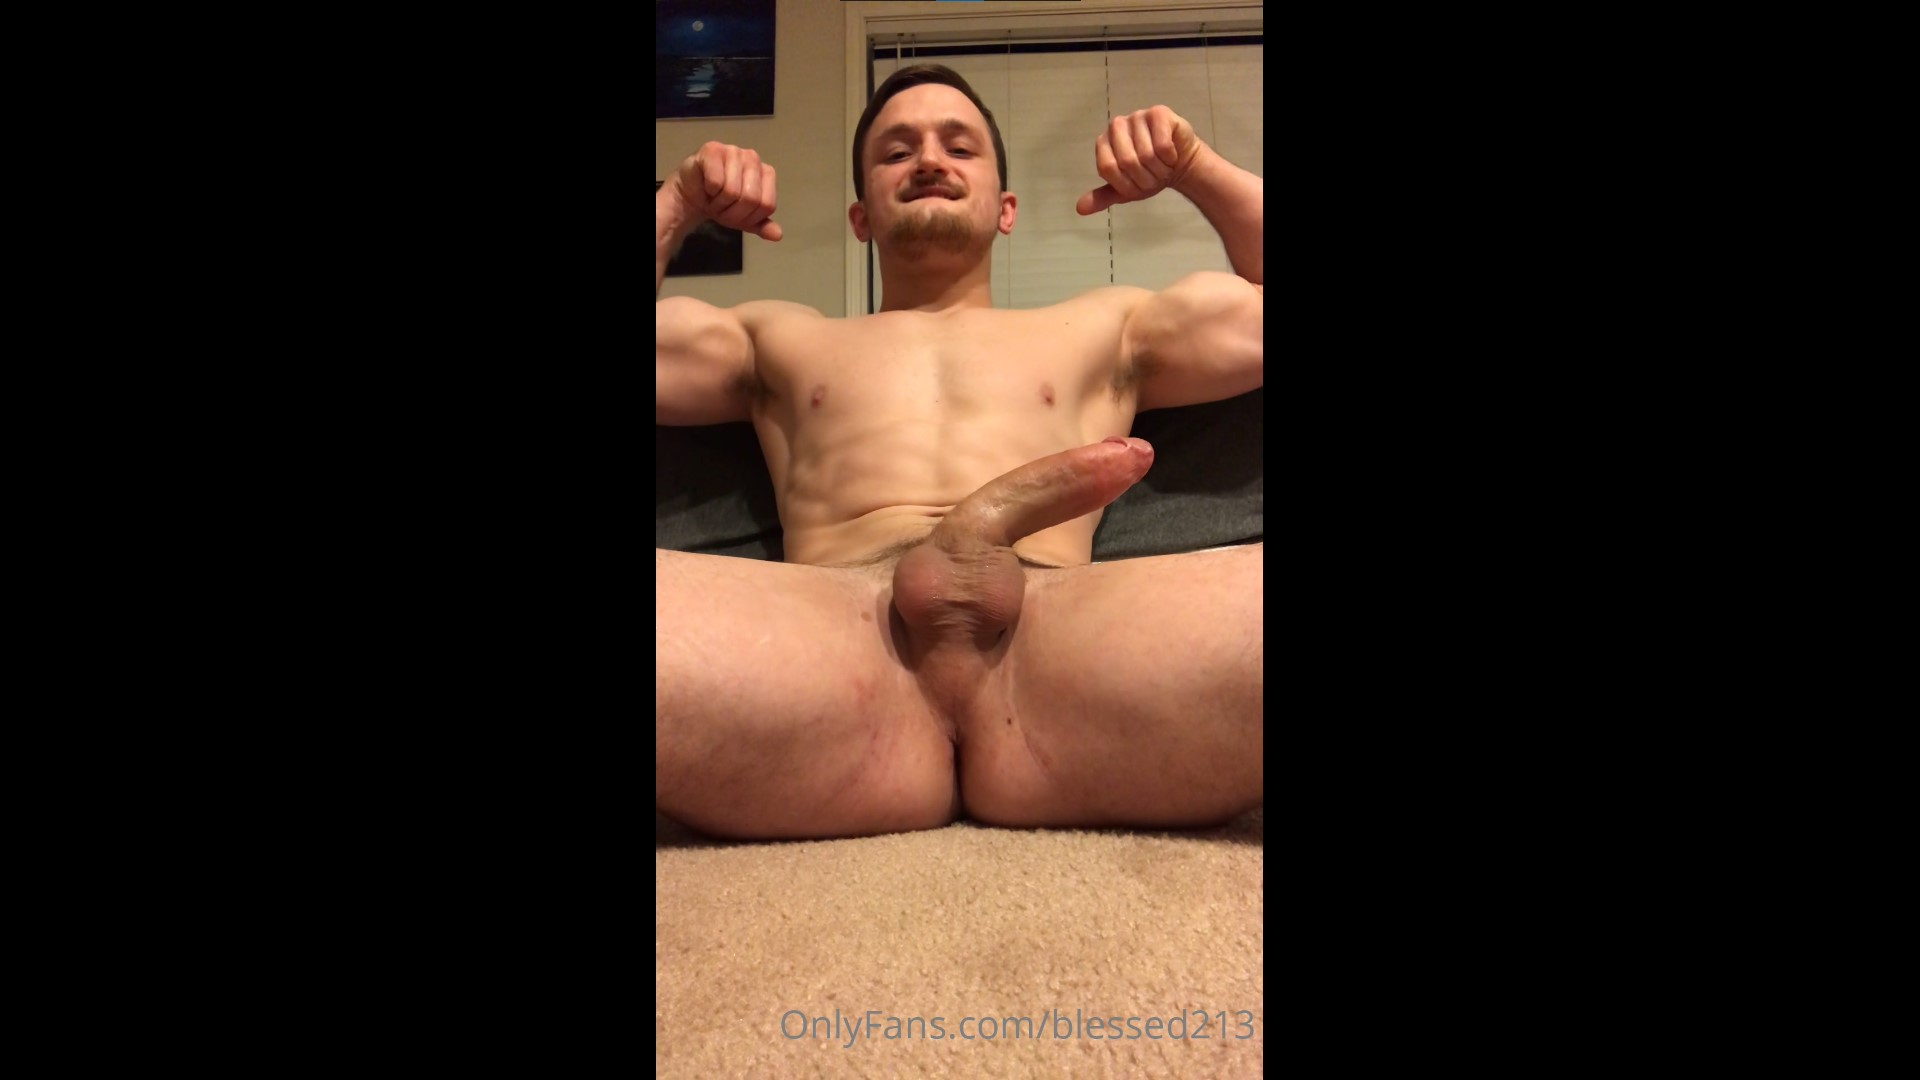 Jerking off hard and showing off my ass - blessed213